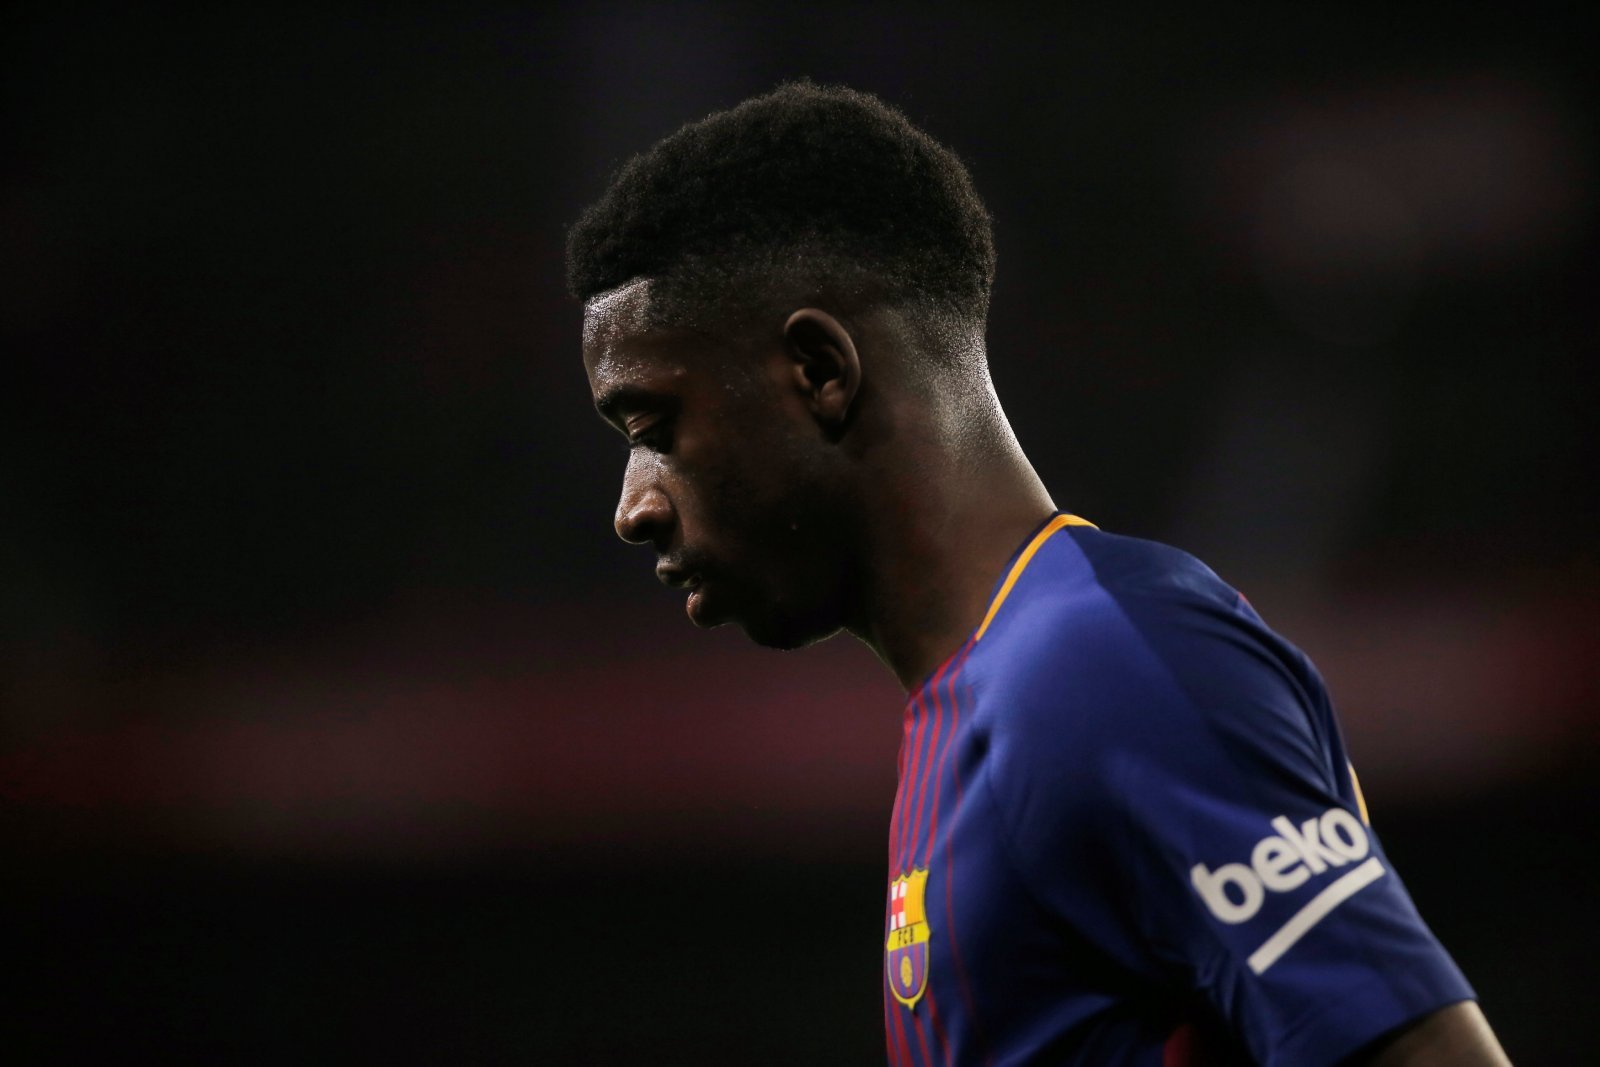 Get it done, Jurgen: 89% of polled Liverpool fans desperate to see Dembele arrive at Anfield